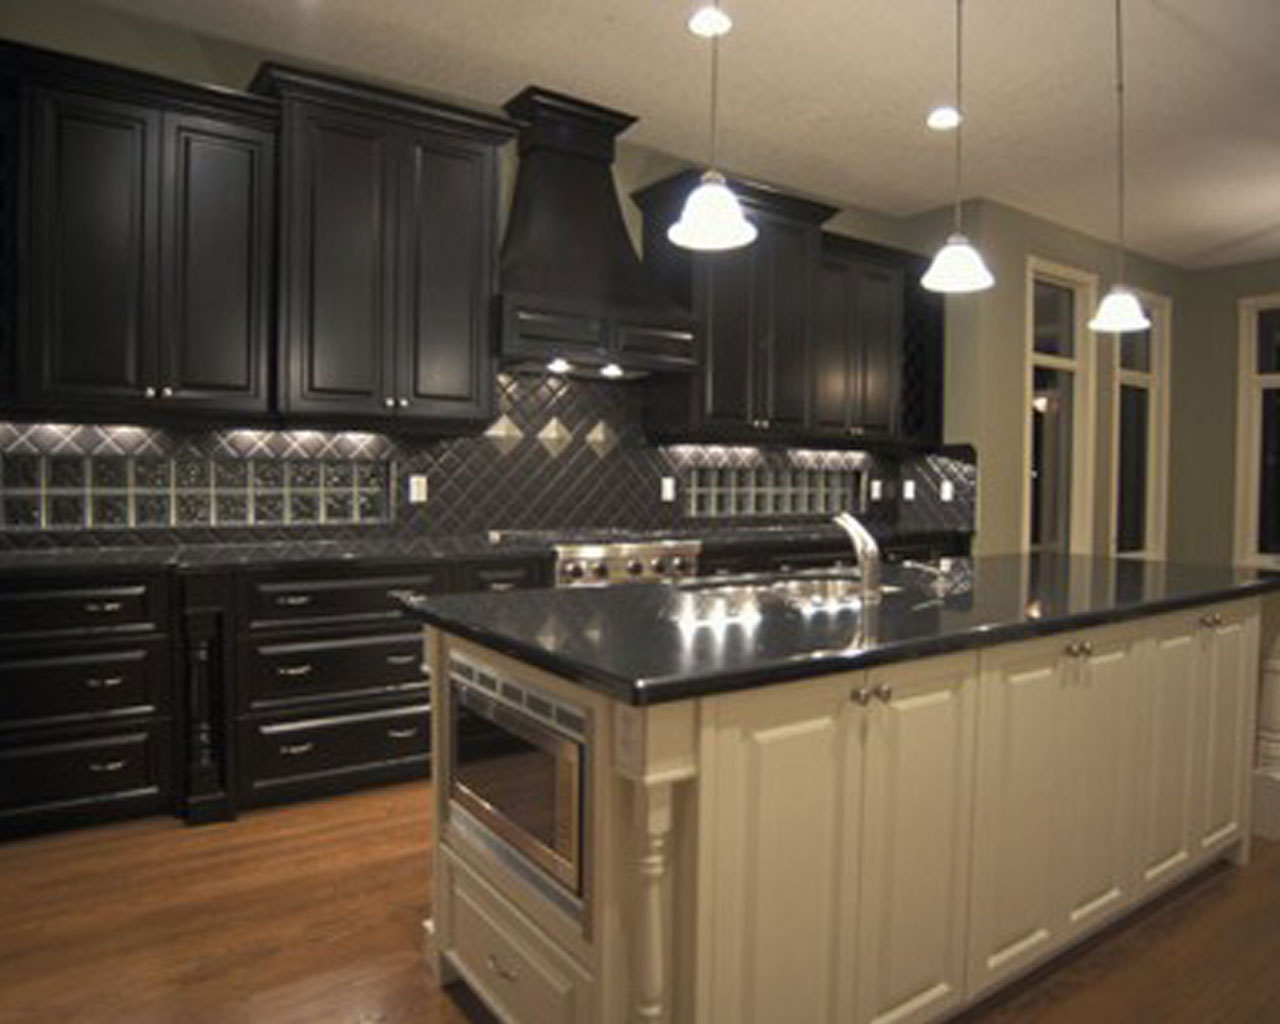 black kitchen cabinets images photo - 9